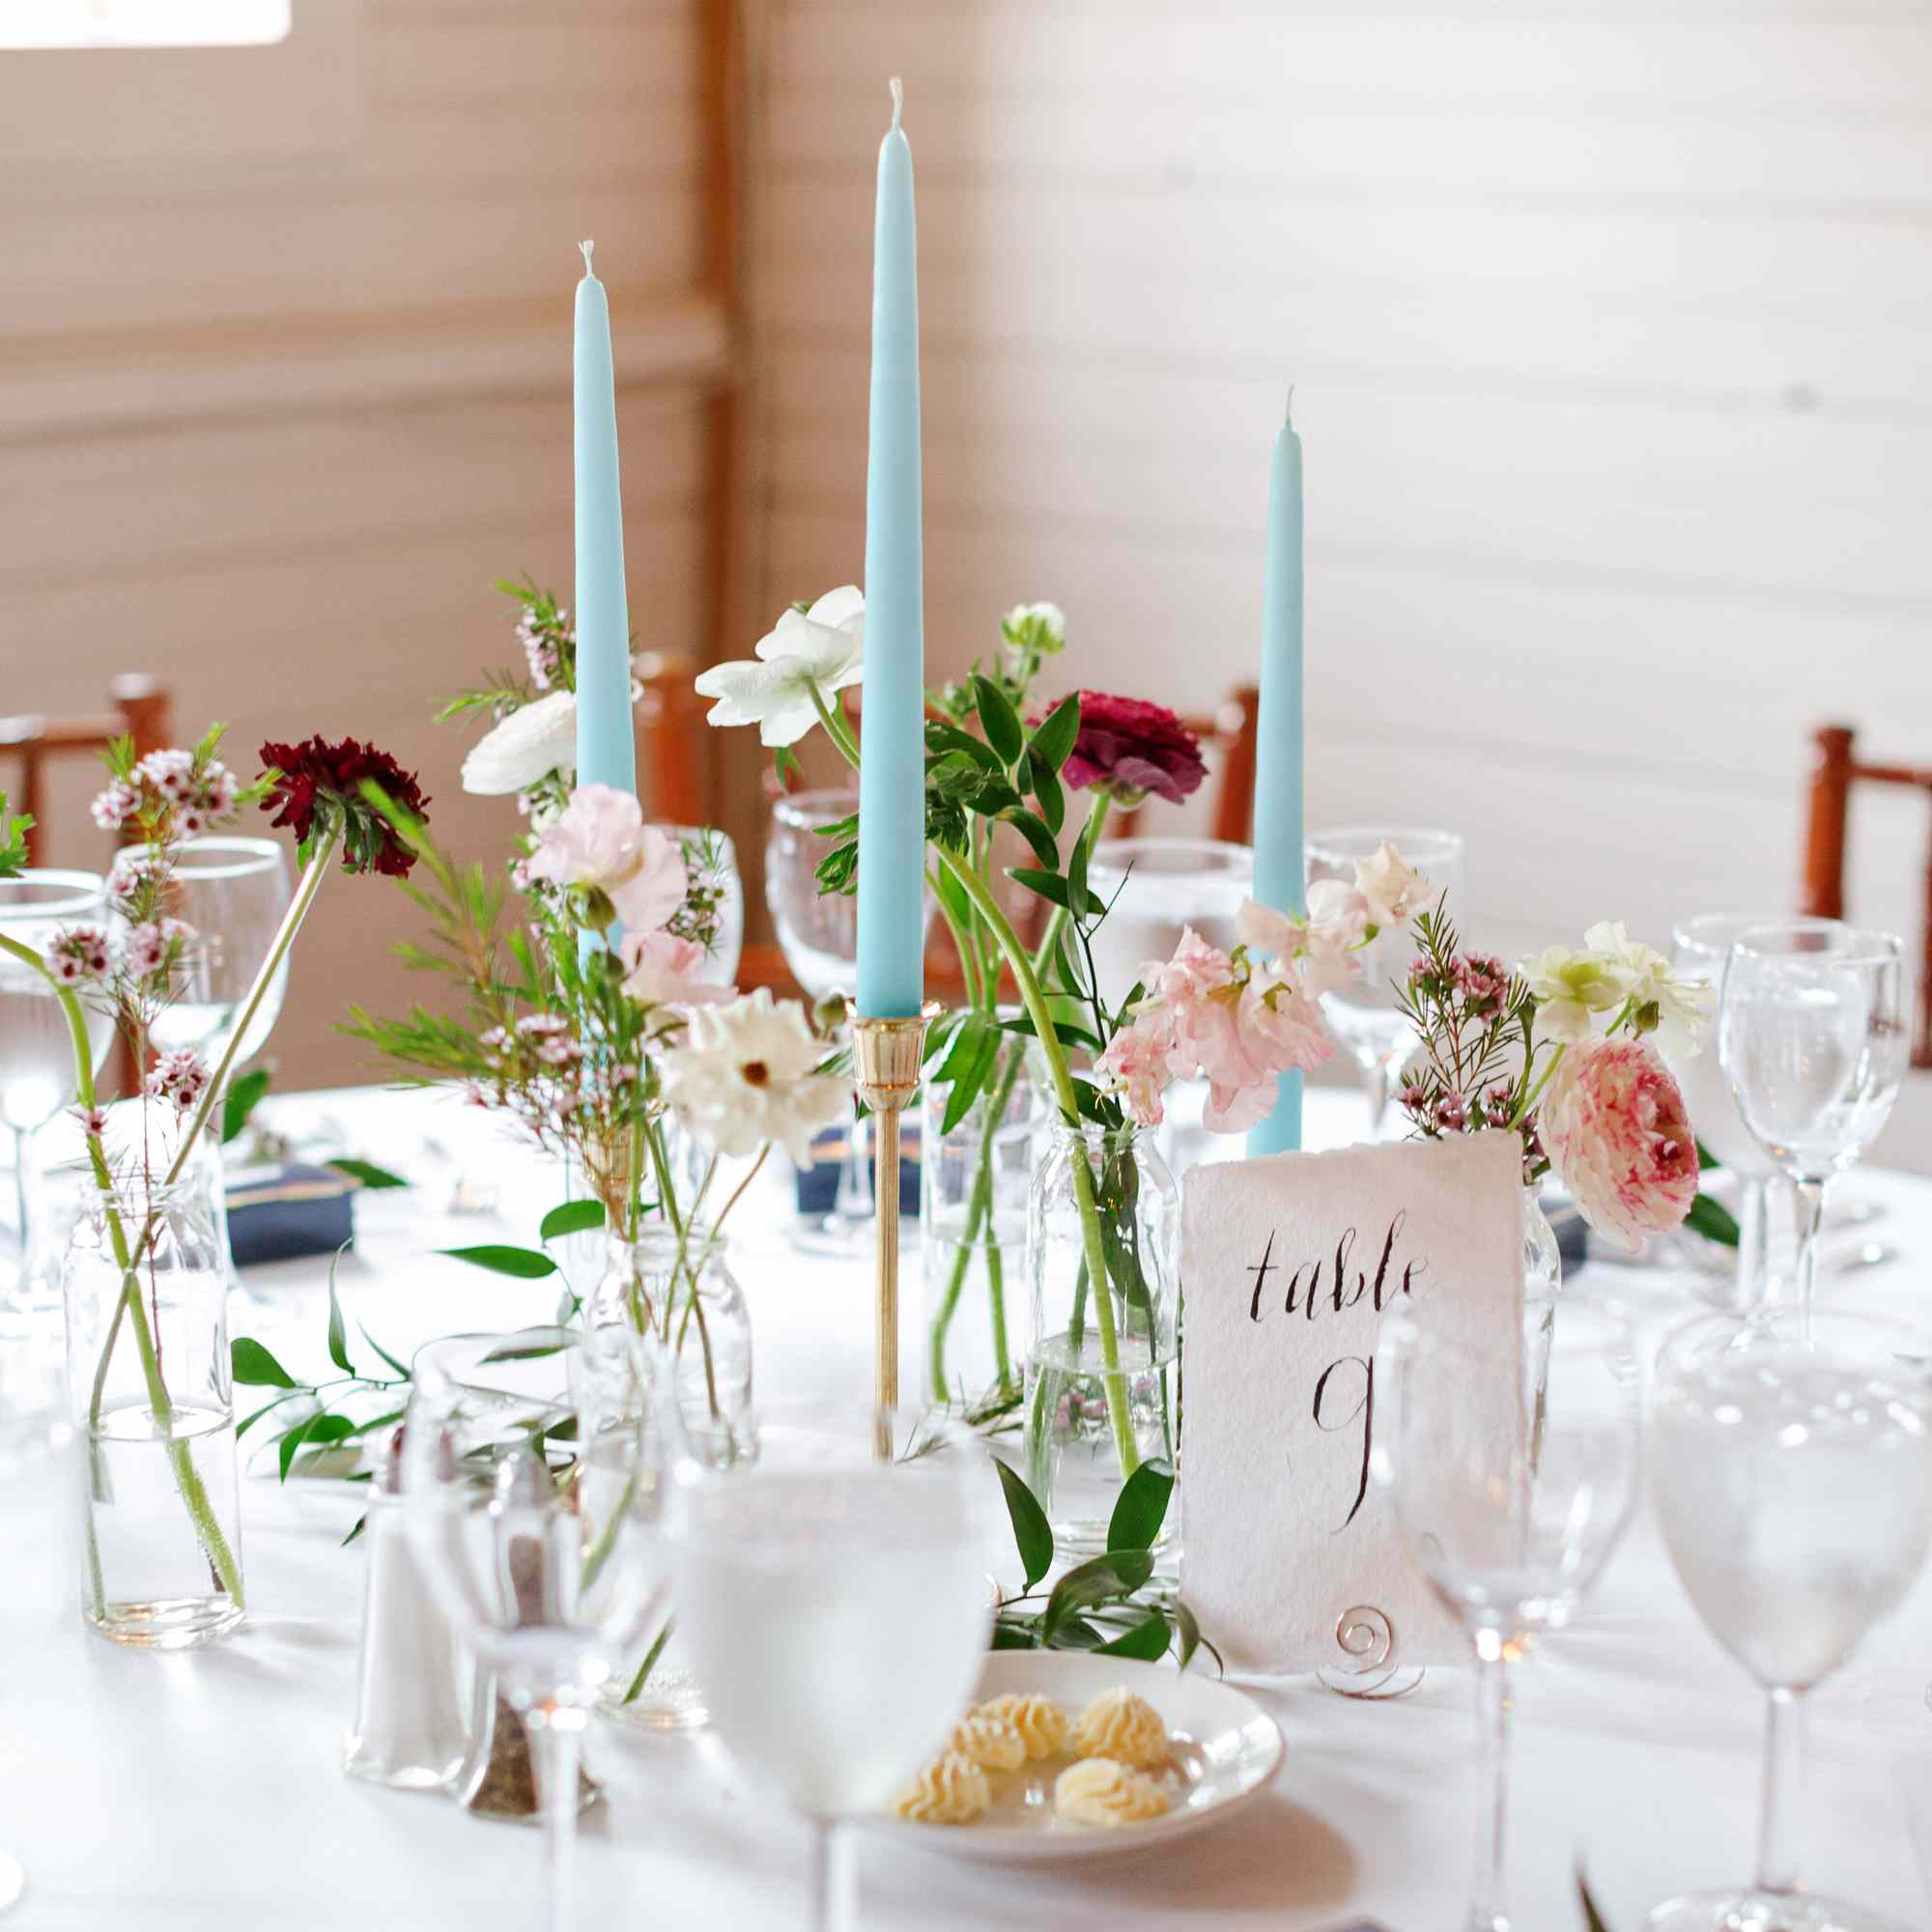 Tablescape with blue taper candles